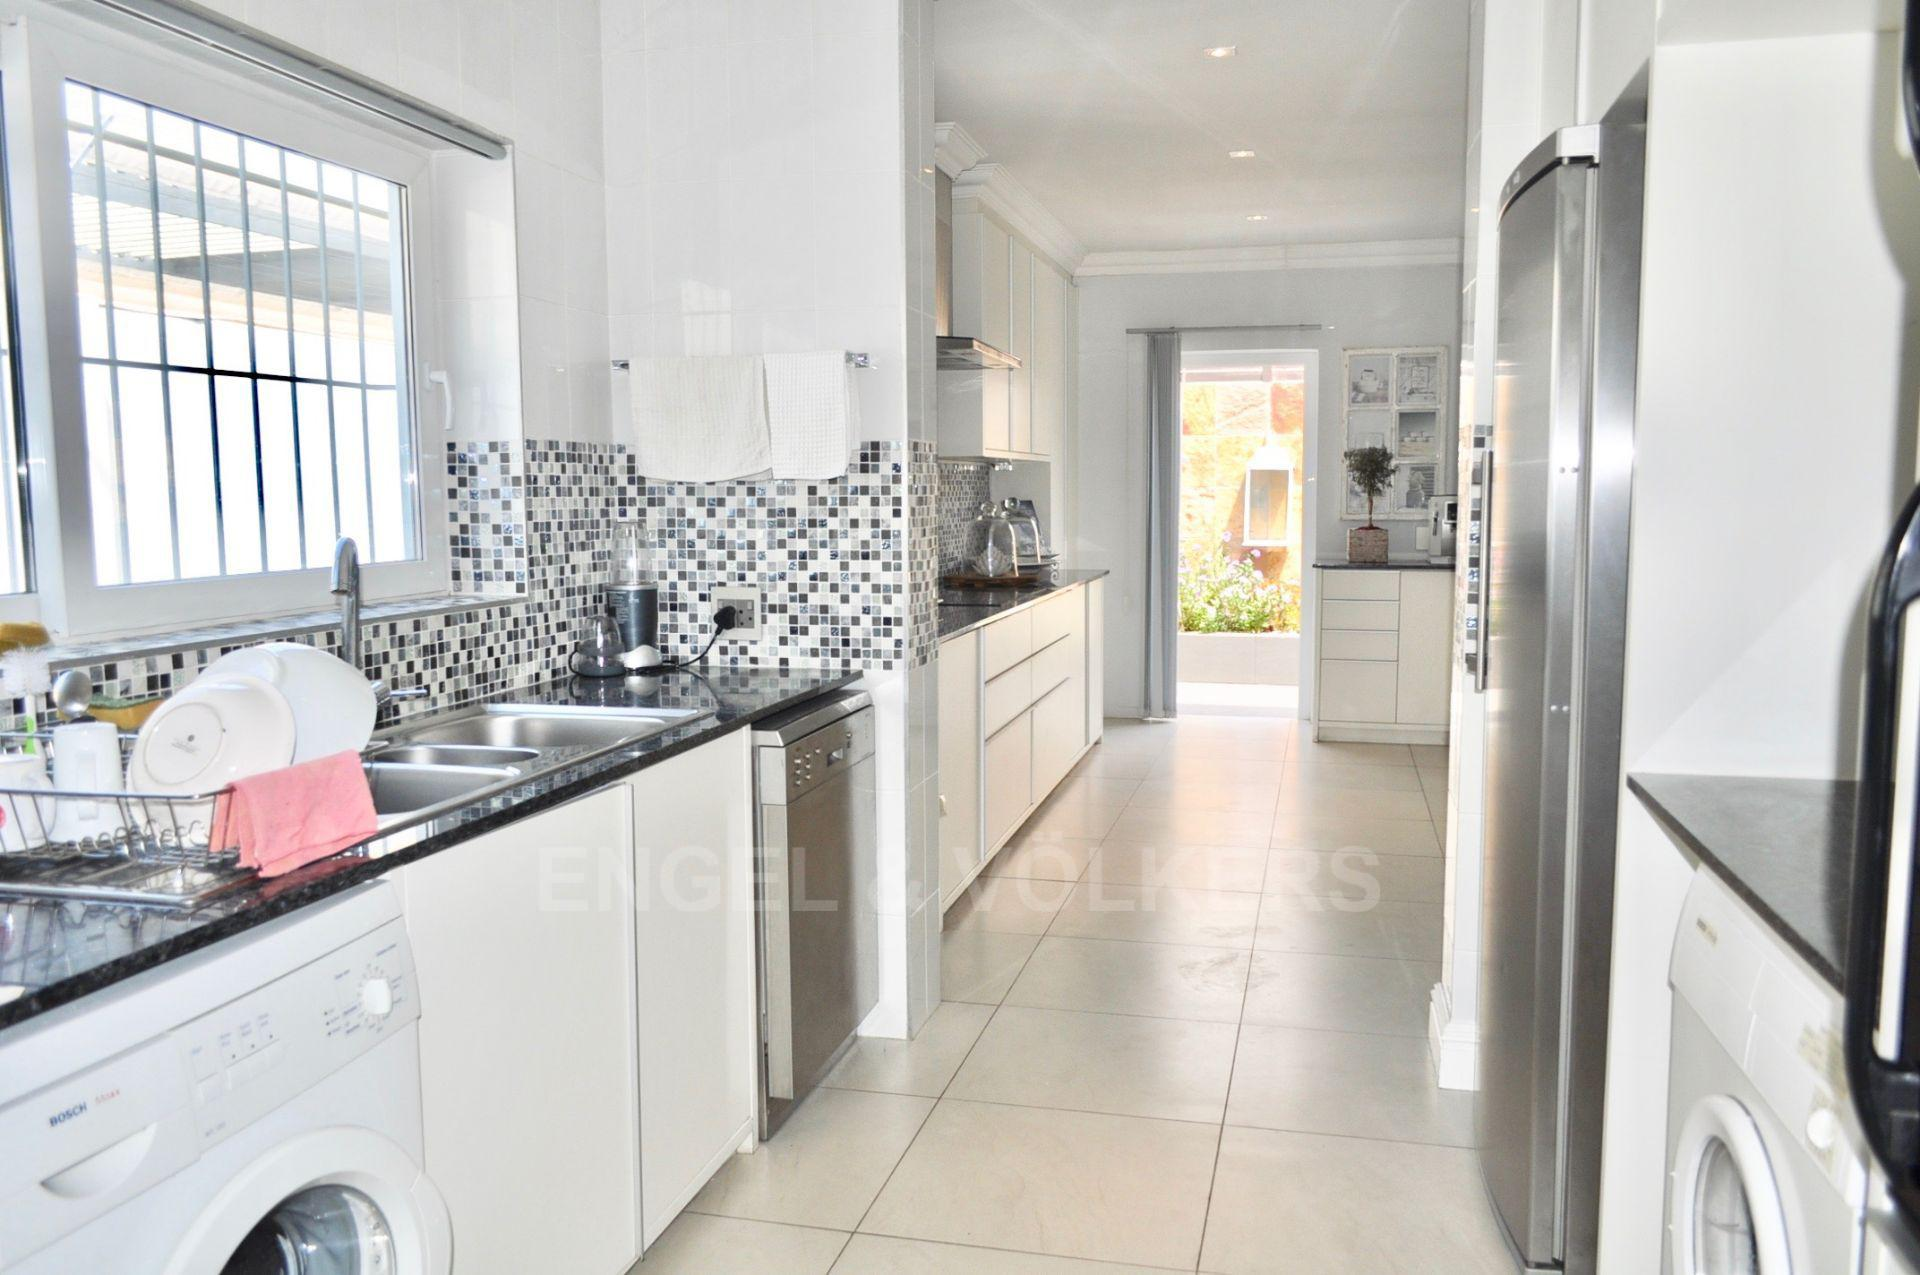 House in Upper Claremont - Kitchen scullery